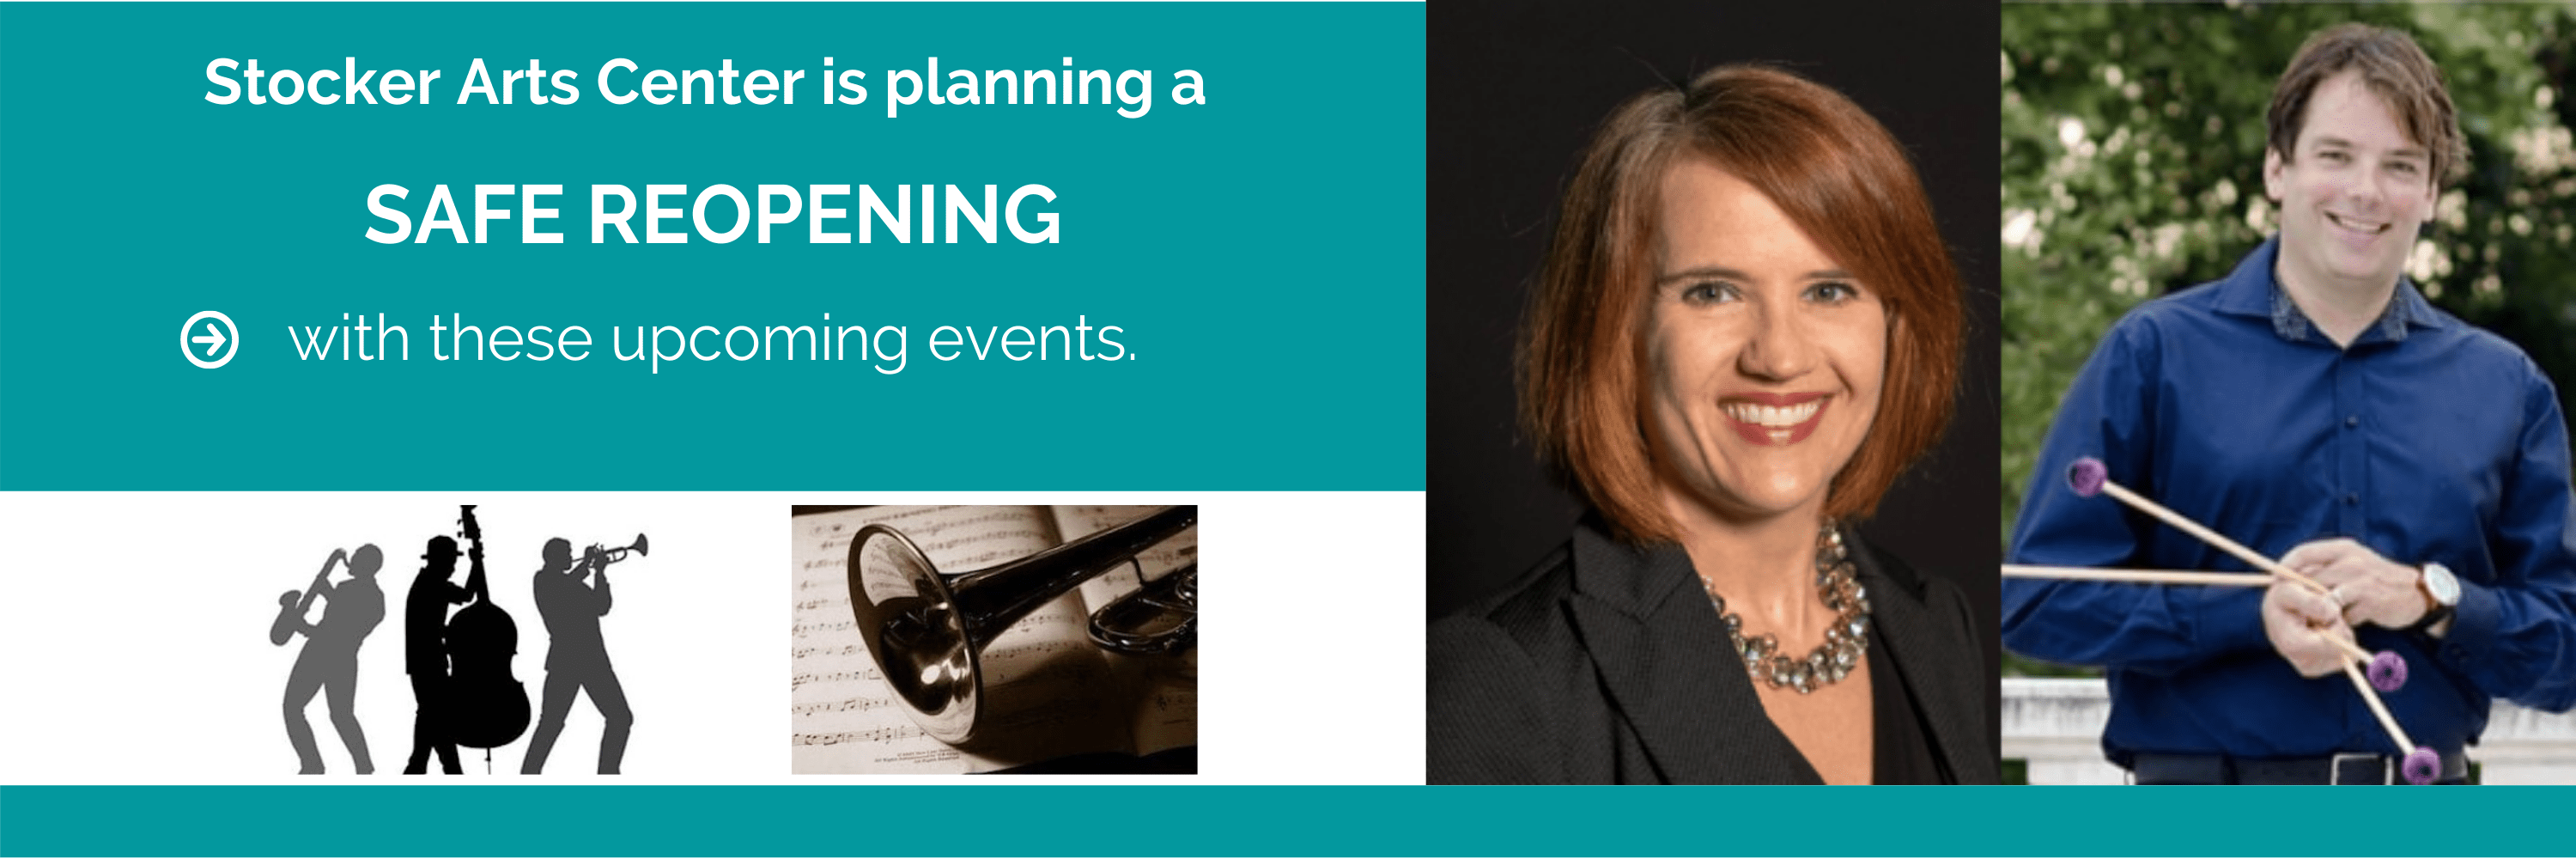 Stocker Arts Center is planning a Safe Reopening with these upcoming Events.